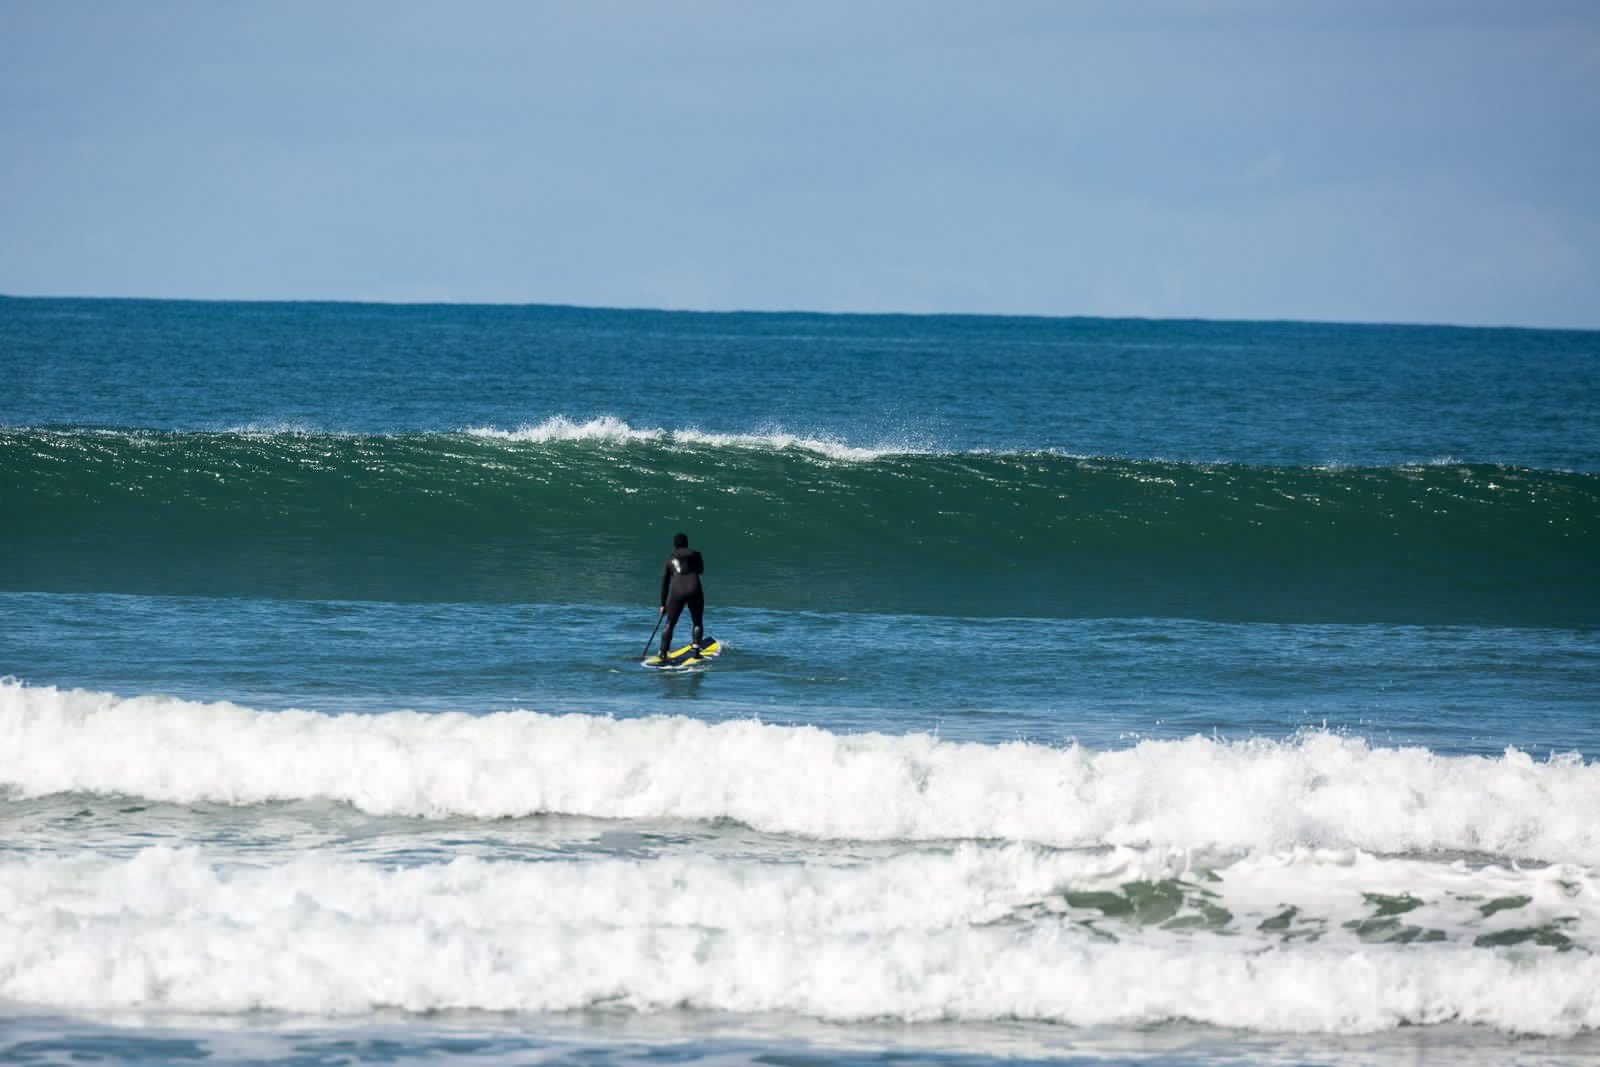 Sup surfing at Kilcummin Brandon Bay